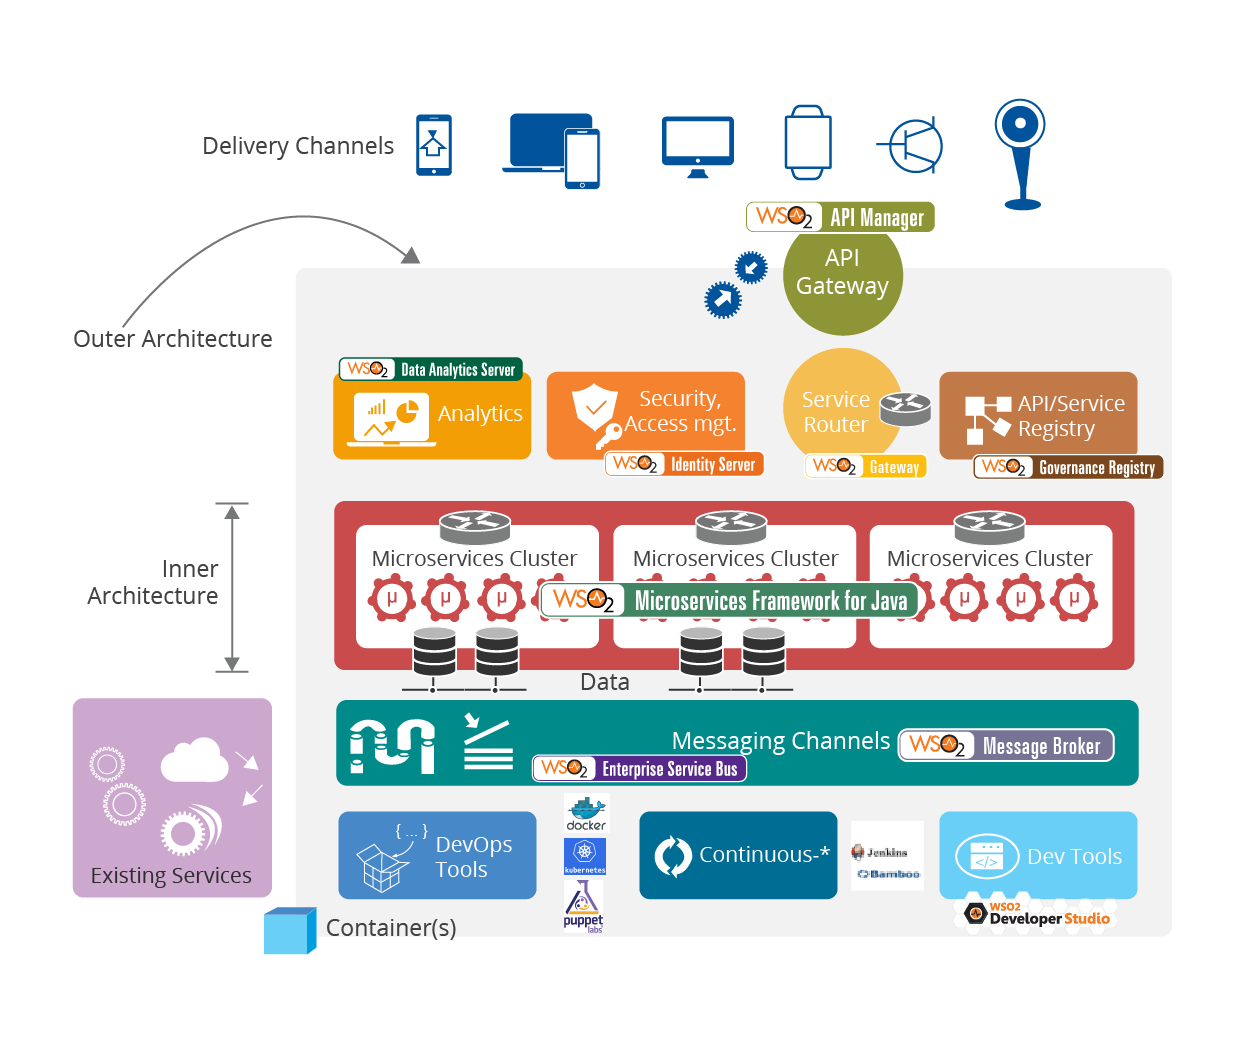 Enabling Microservice Architecture with Middleware